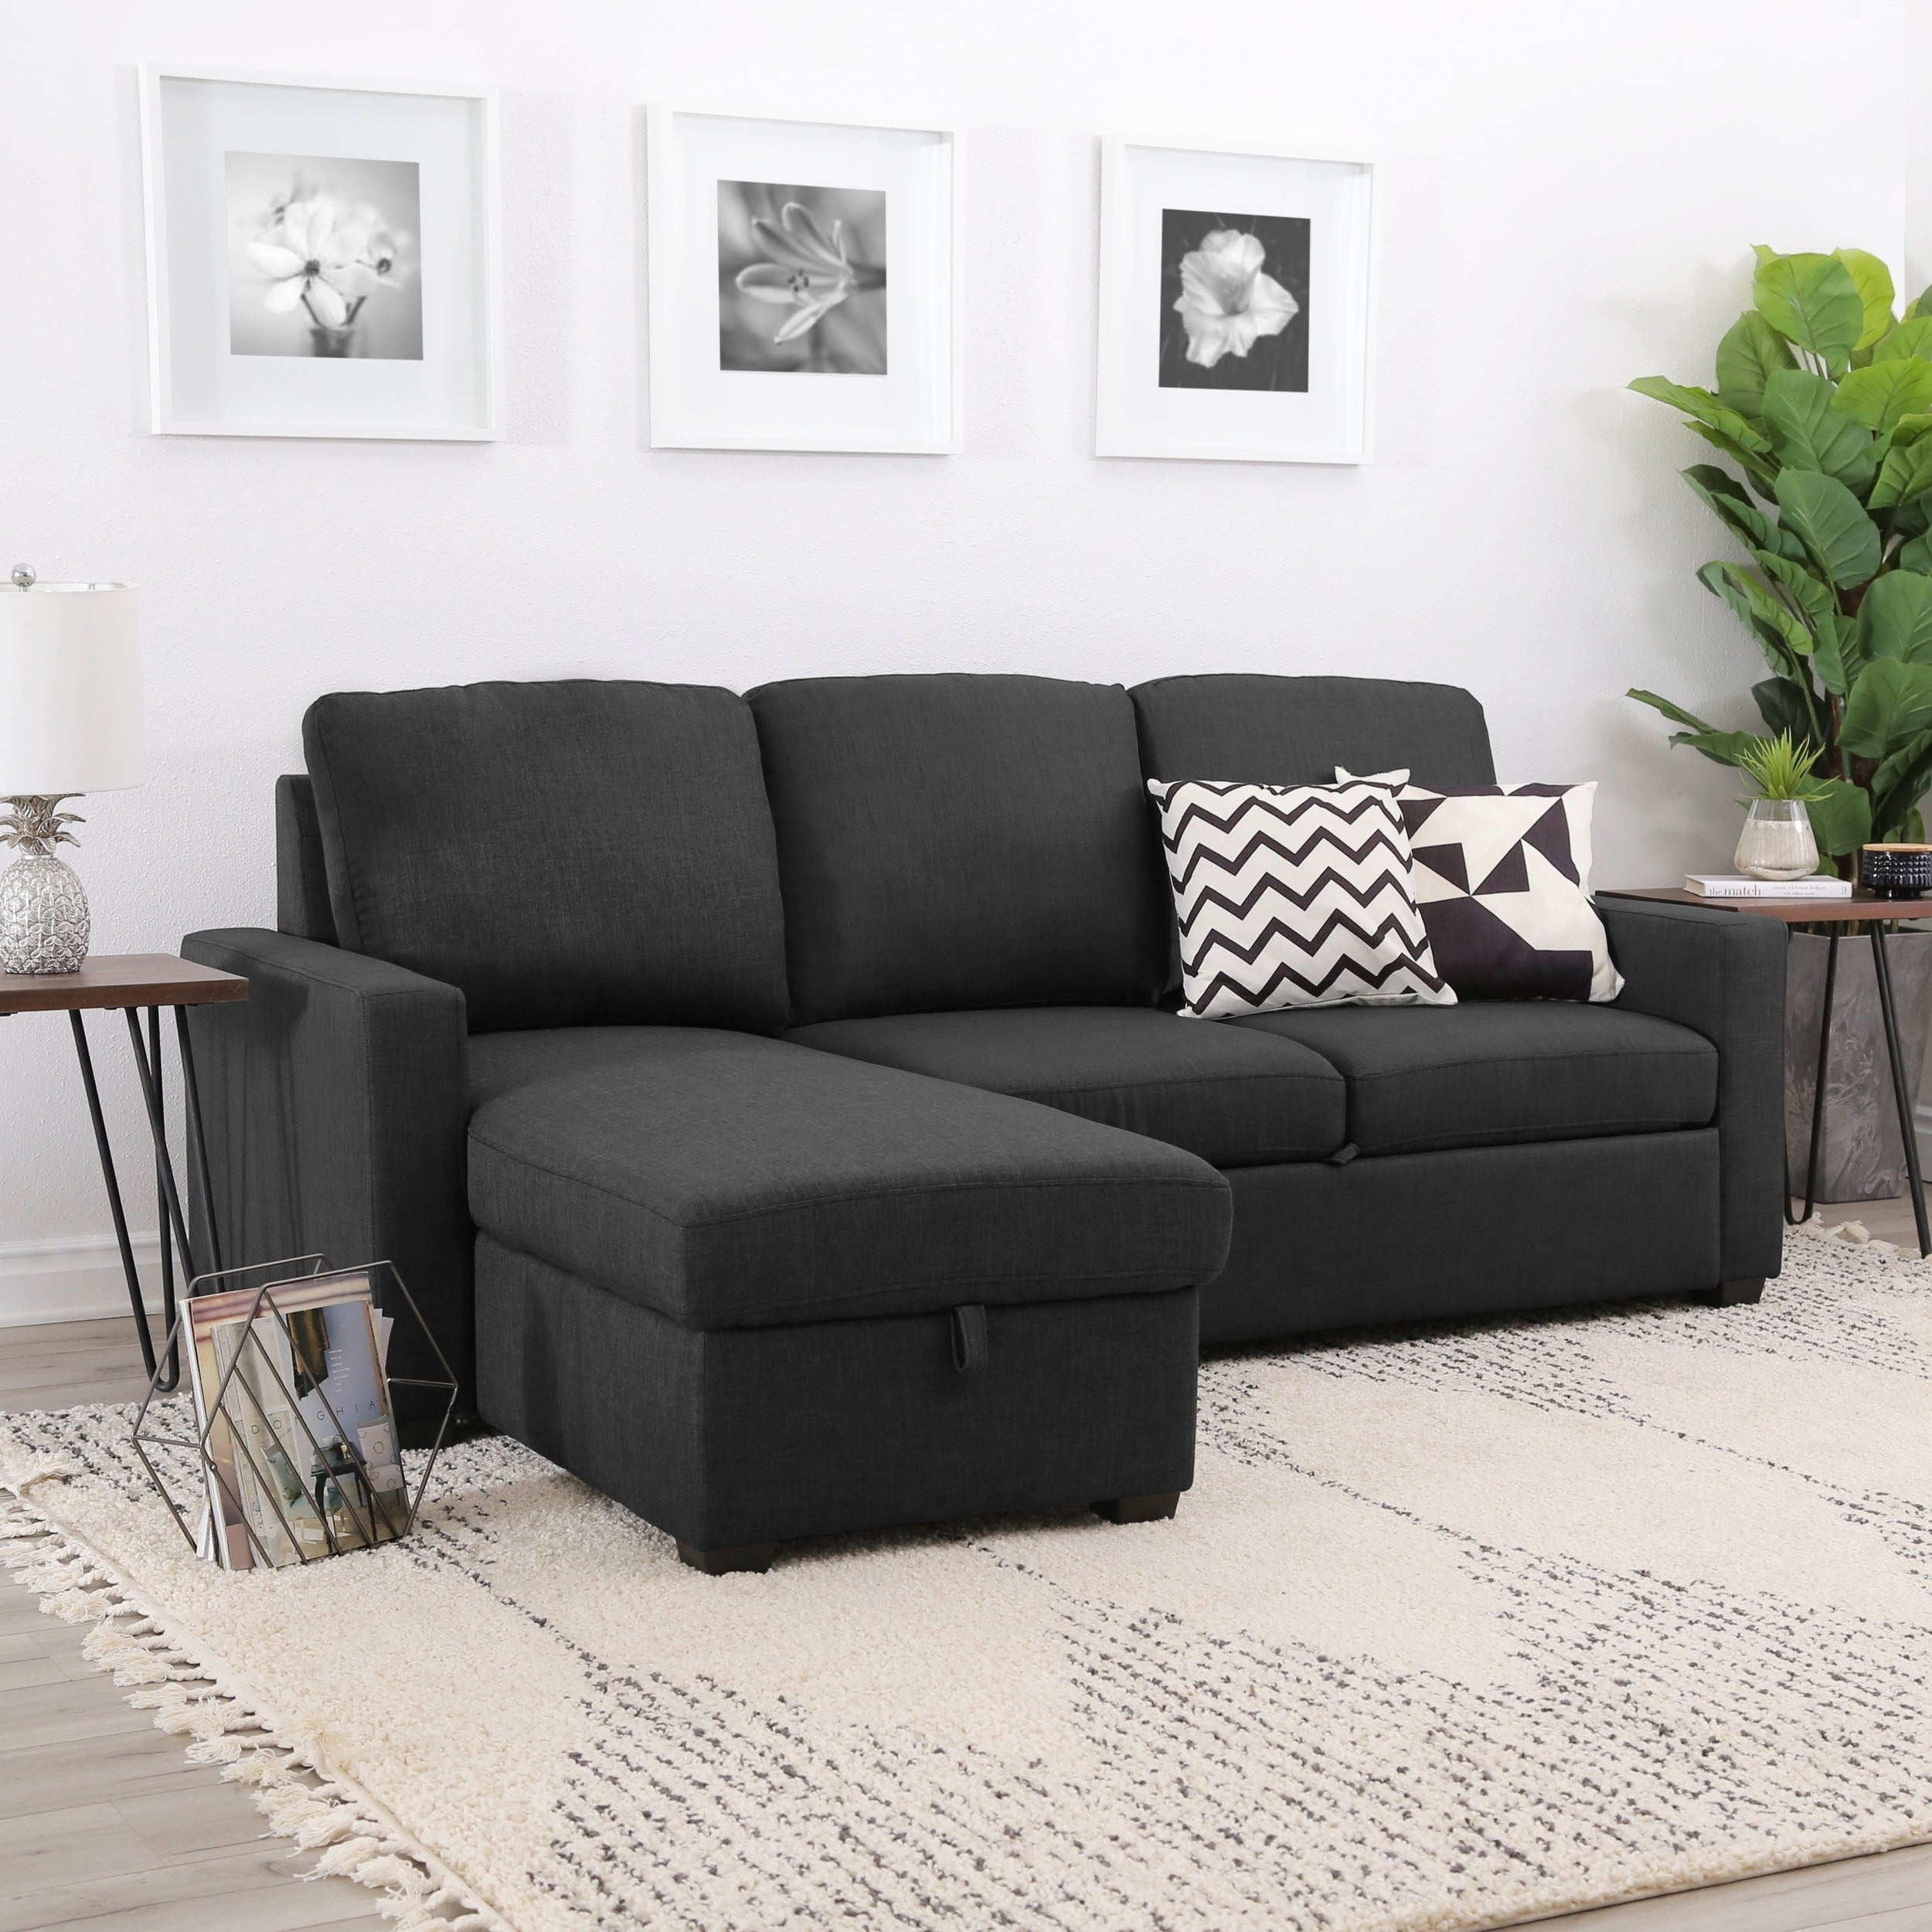 Sleeper Sectional Sofas Online At Our Best